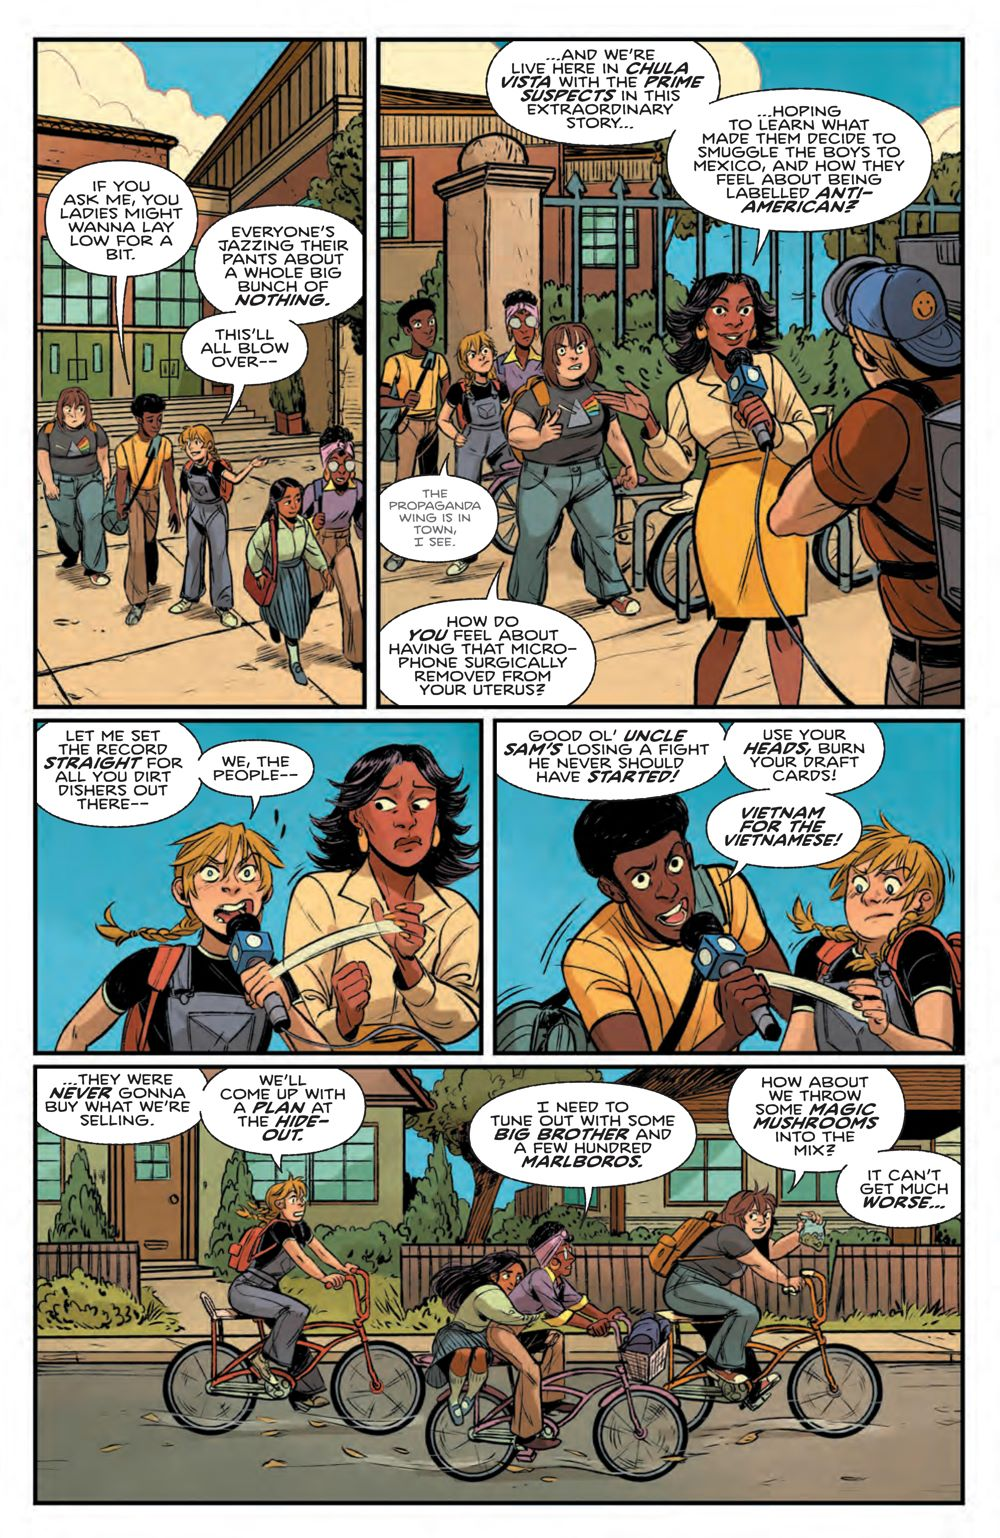 ProctorValleyRoad_002_PRESS_5 ComicList Previews: PROCTOR VALLEY ROAD #2 (OF 5)